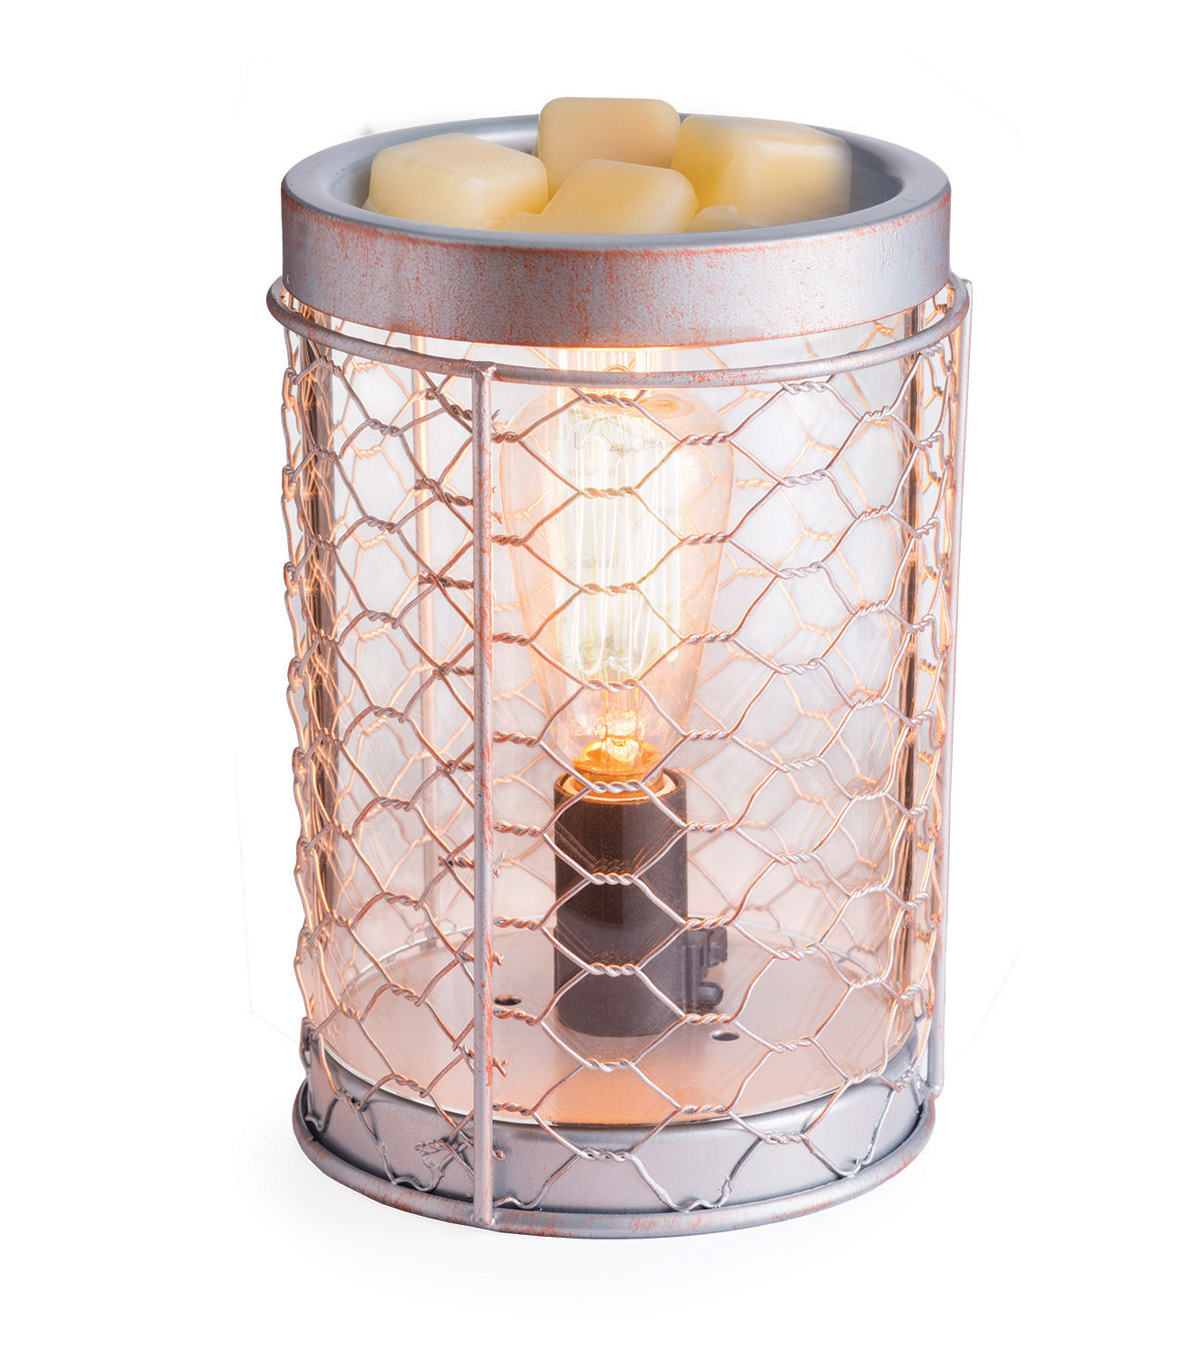 Edison Bulb Chicken Wire Illumination Fragrance Wax Warmer